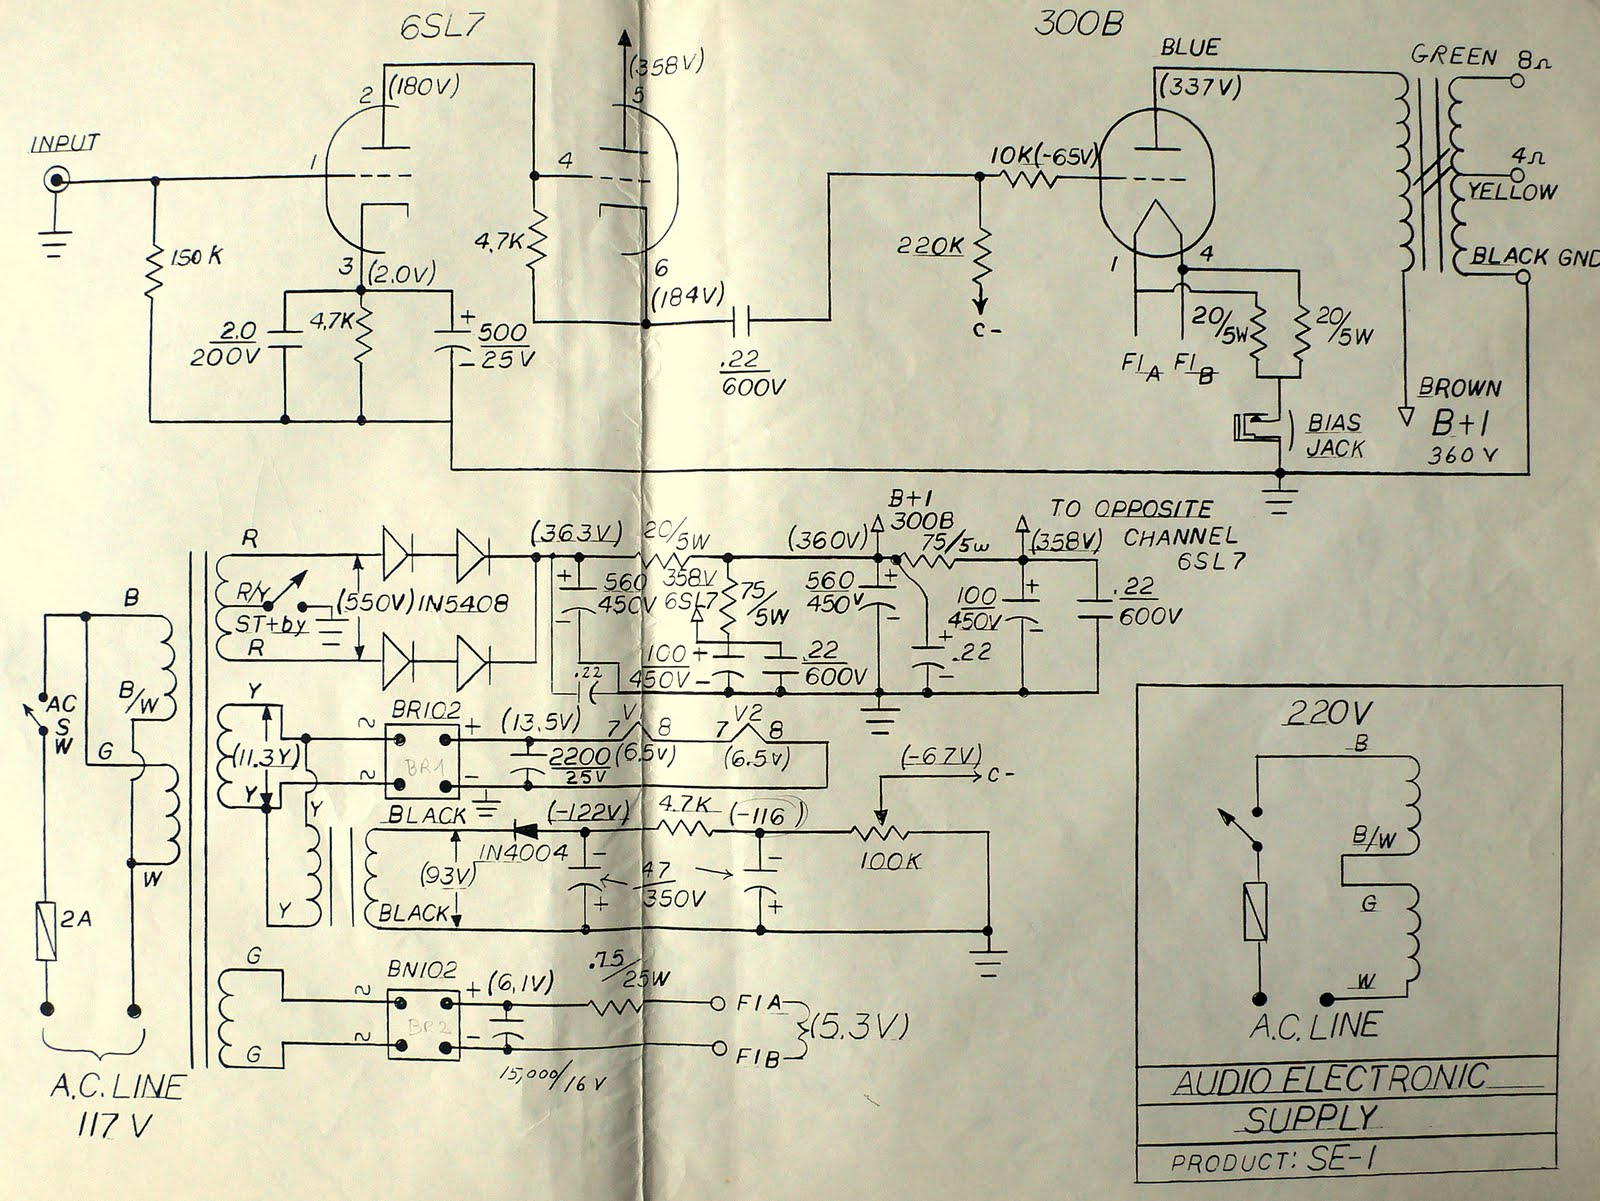 small resolution of doctorjohn cheaptubeaudio audio reviews and more aes se 1 schematic and info